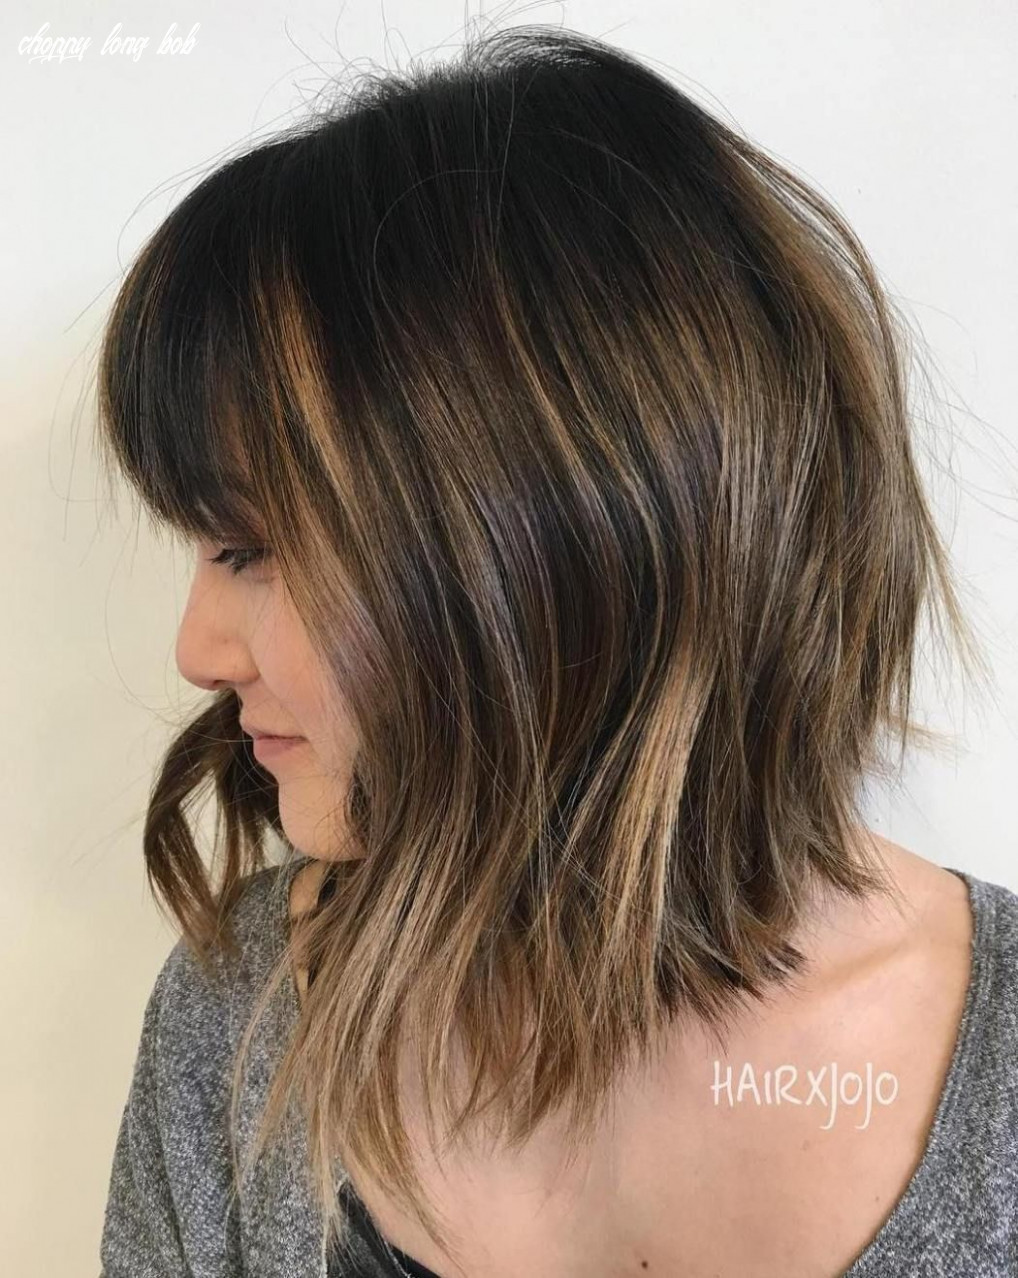 12 long choppy bob hairstyles for brunettes and blondes | choppy